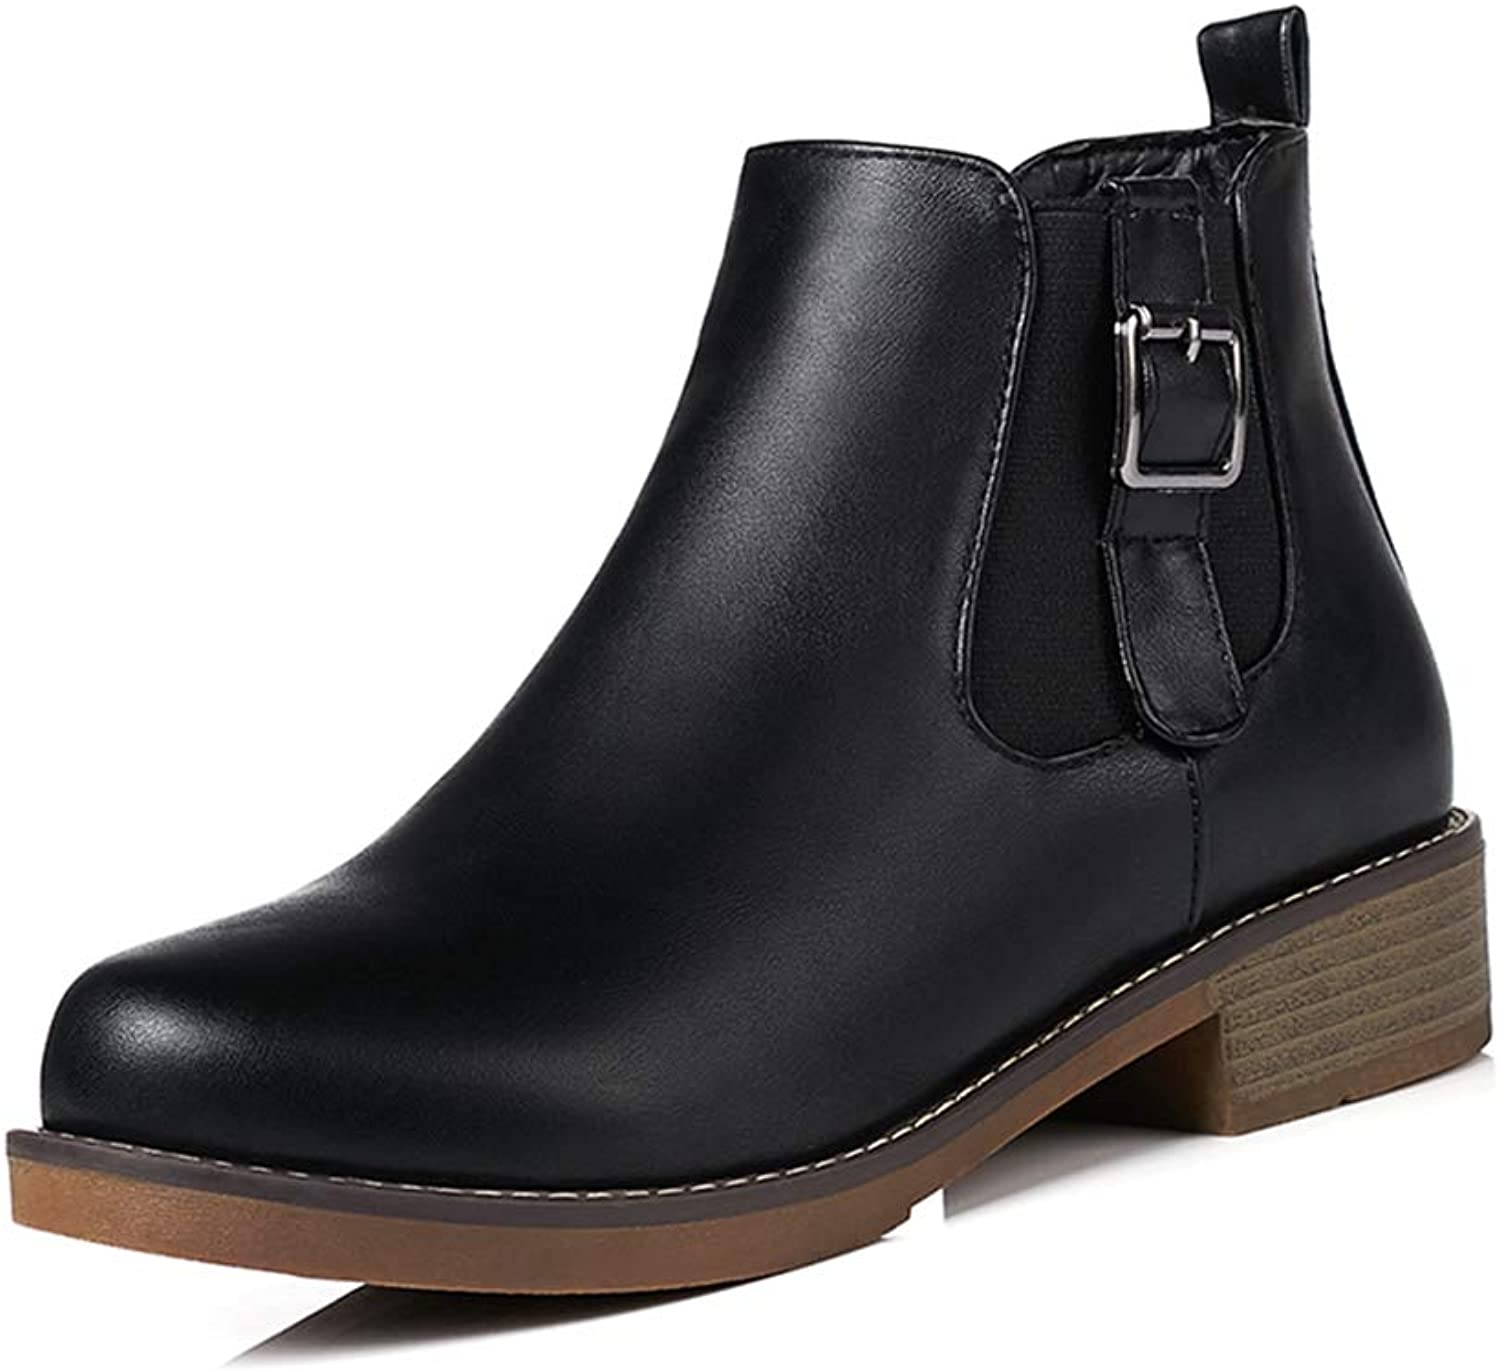 GIY Women's Round Toe Chelsea Boots Comfort Short Plush Waterproof Ankle Boots Winter Casual Slip On Short Boots